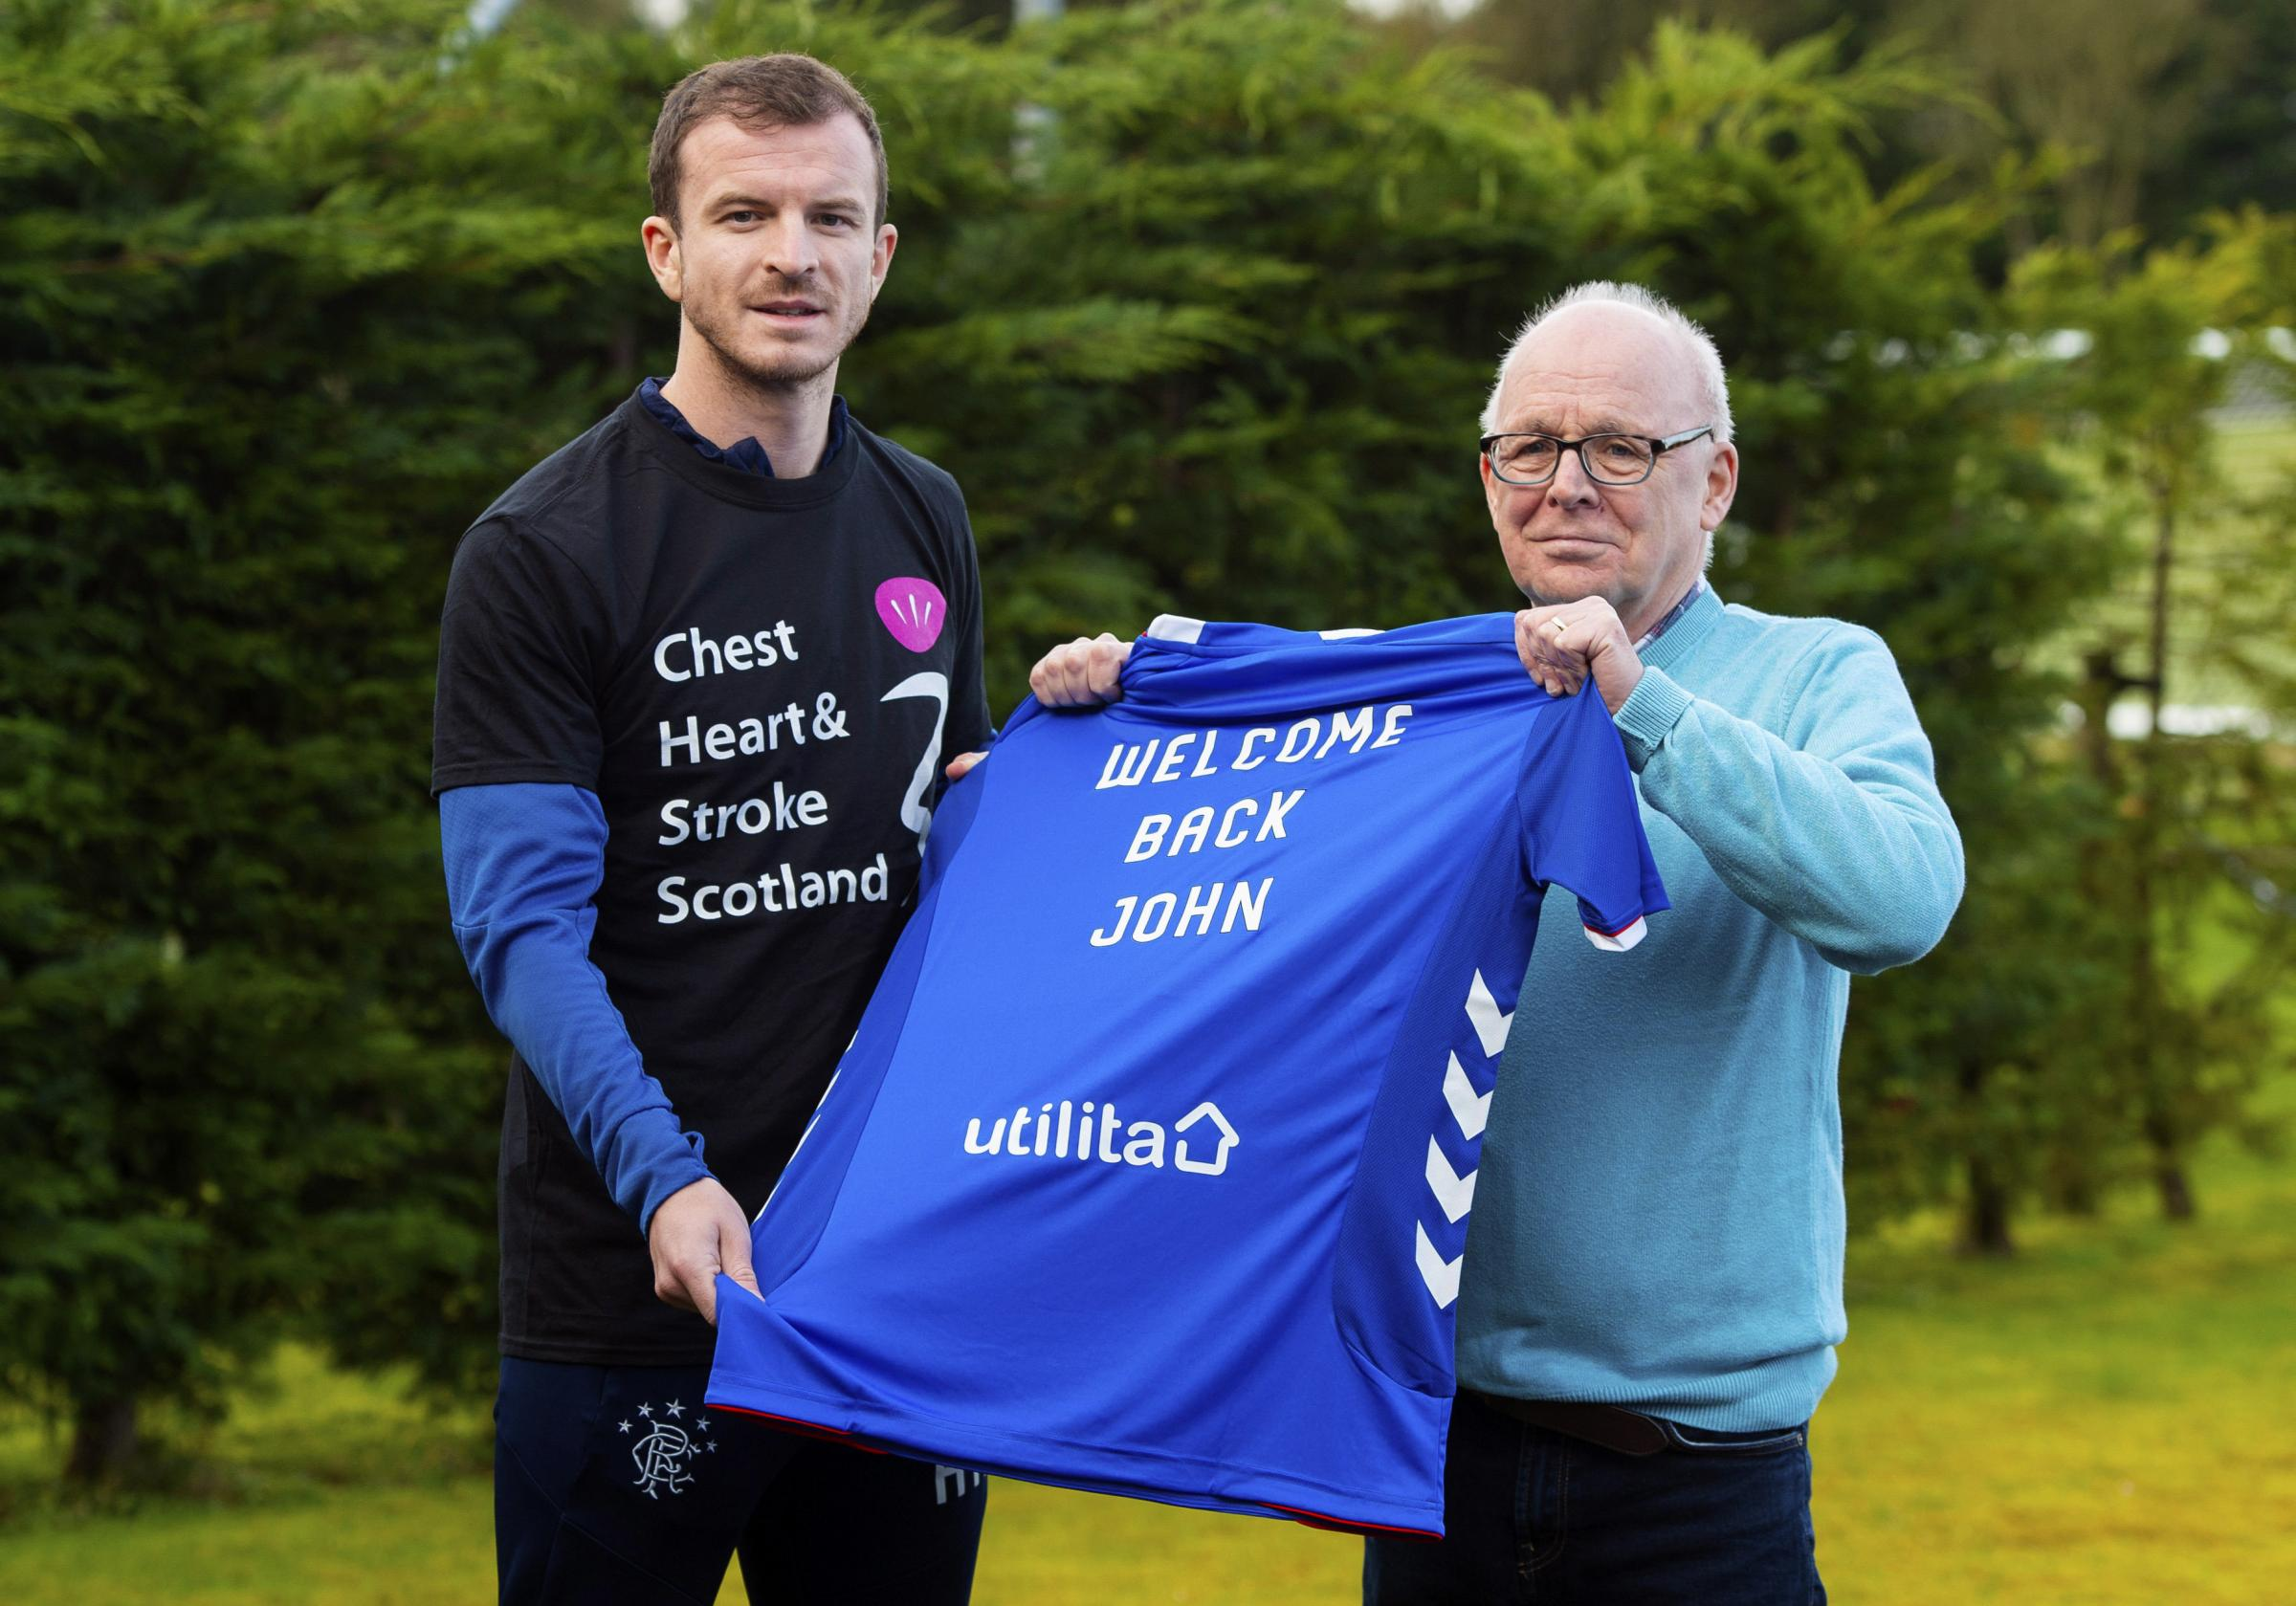 Rangers Charity Foundation celebrates its partnership with Chest, Heart and Stroke Scotland.Pictured: Rangers player Andy Halliday and fan John Sangster, who suffered a stroke in 2016 and will return to Ibrox for the first time this weekend.